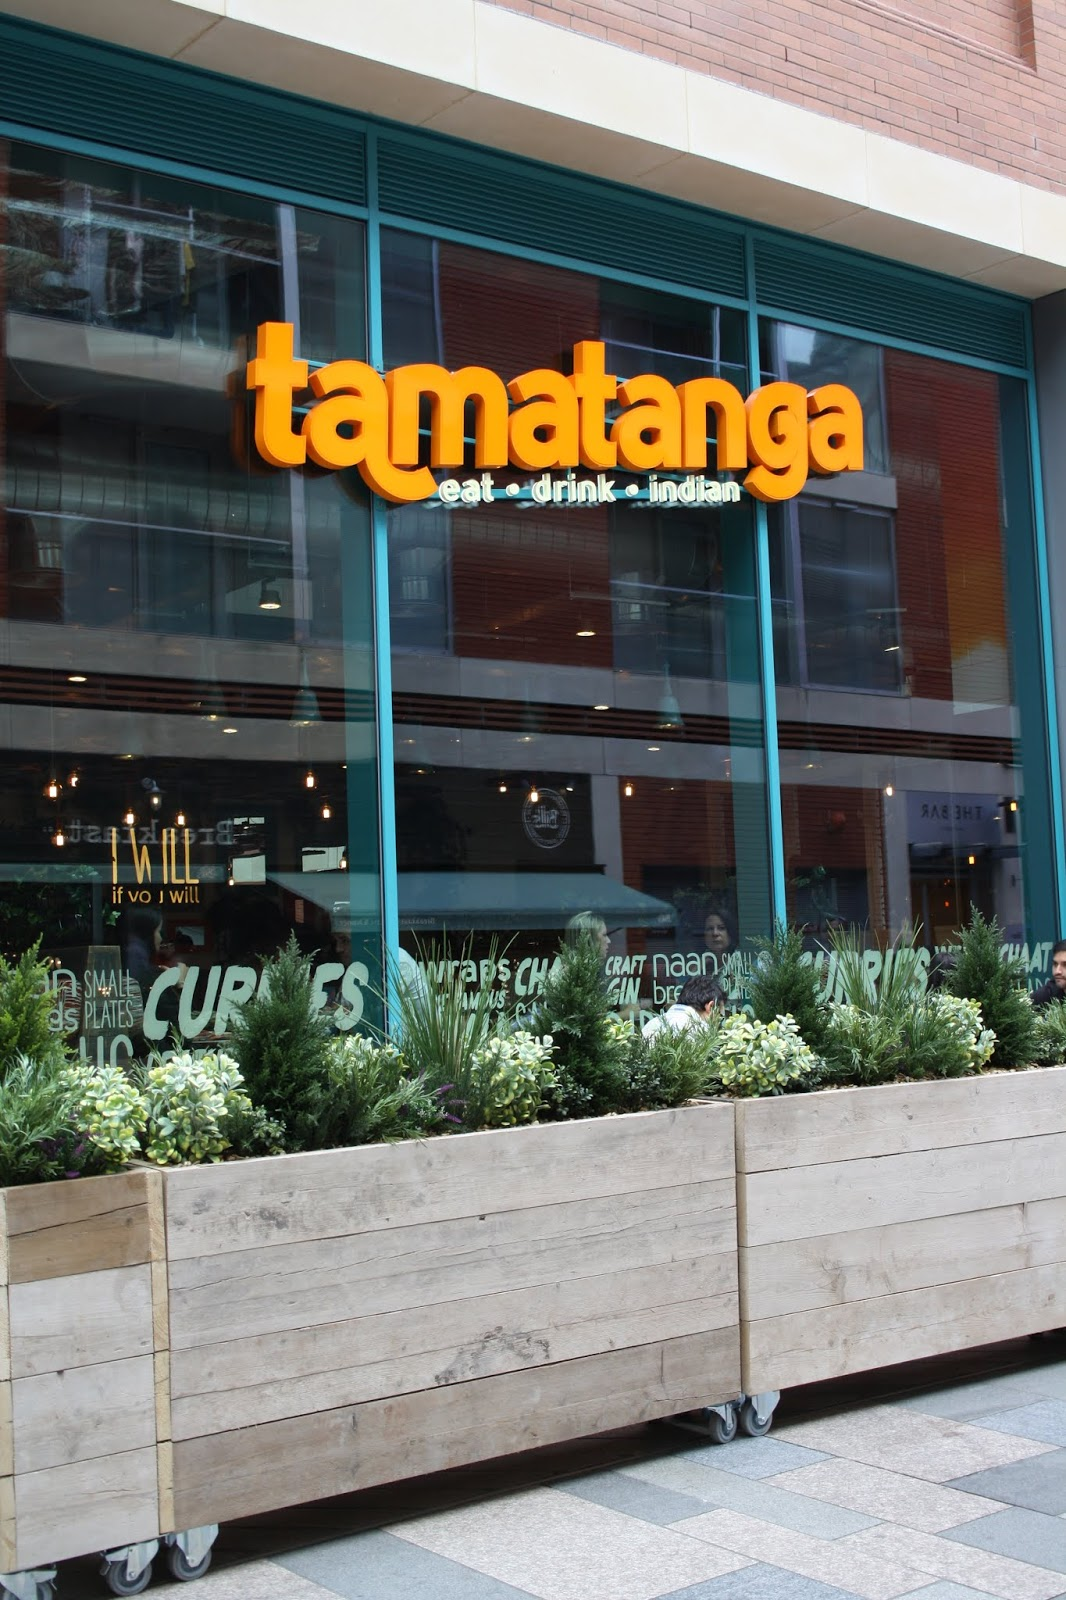 The exterior of the Tamatanga restaurant at Highcross, Leicester, with the establishment's name on a big orange sign